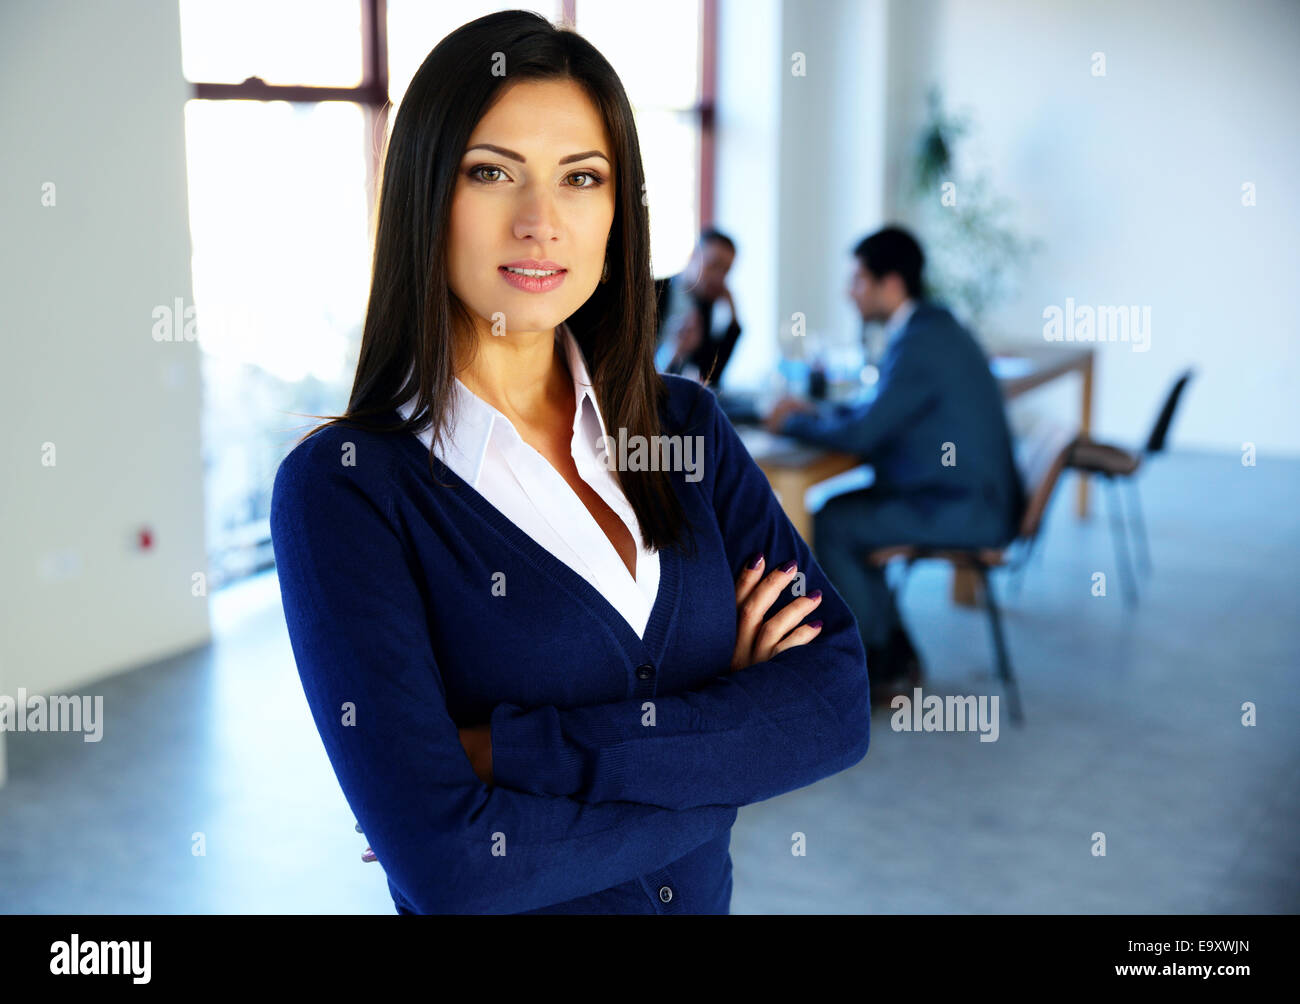 Beautiful woman standing with arms folded with colleagues on background - Stock Image